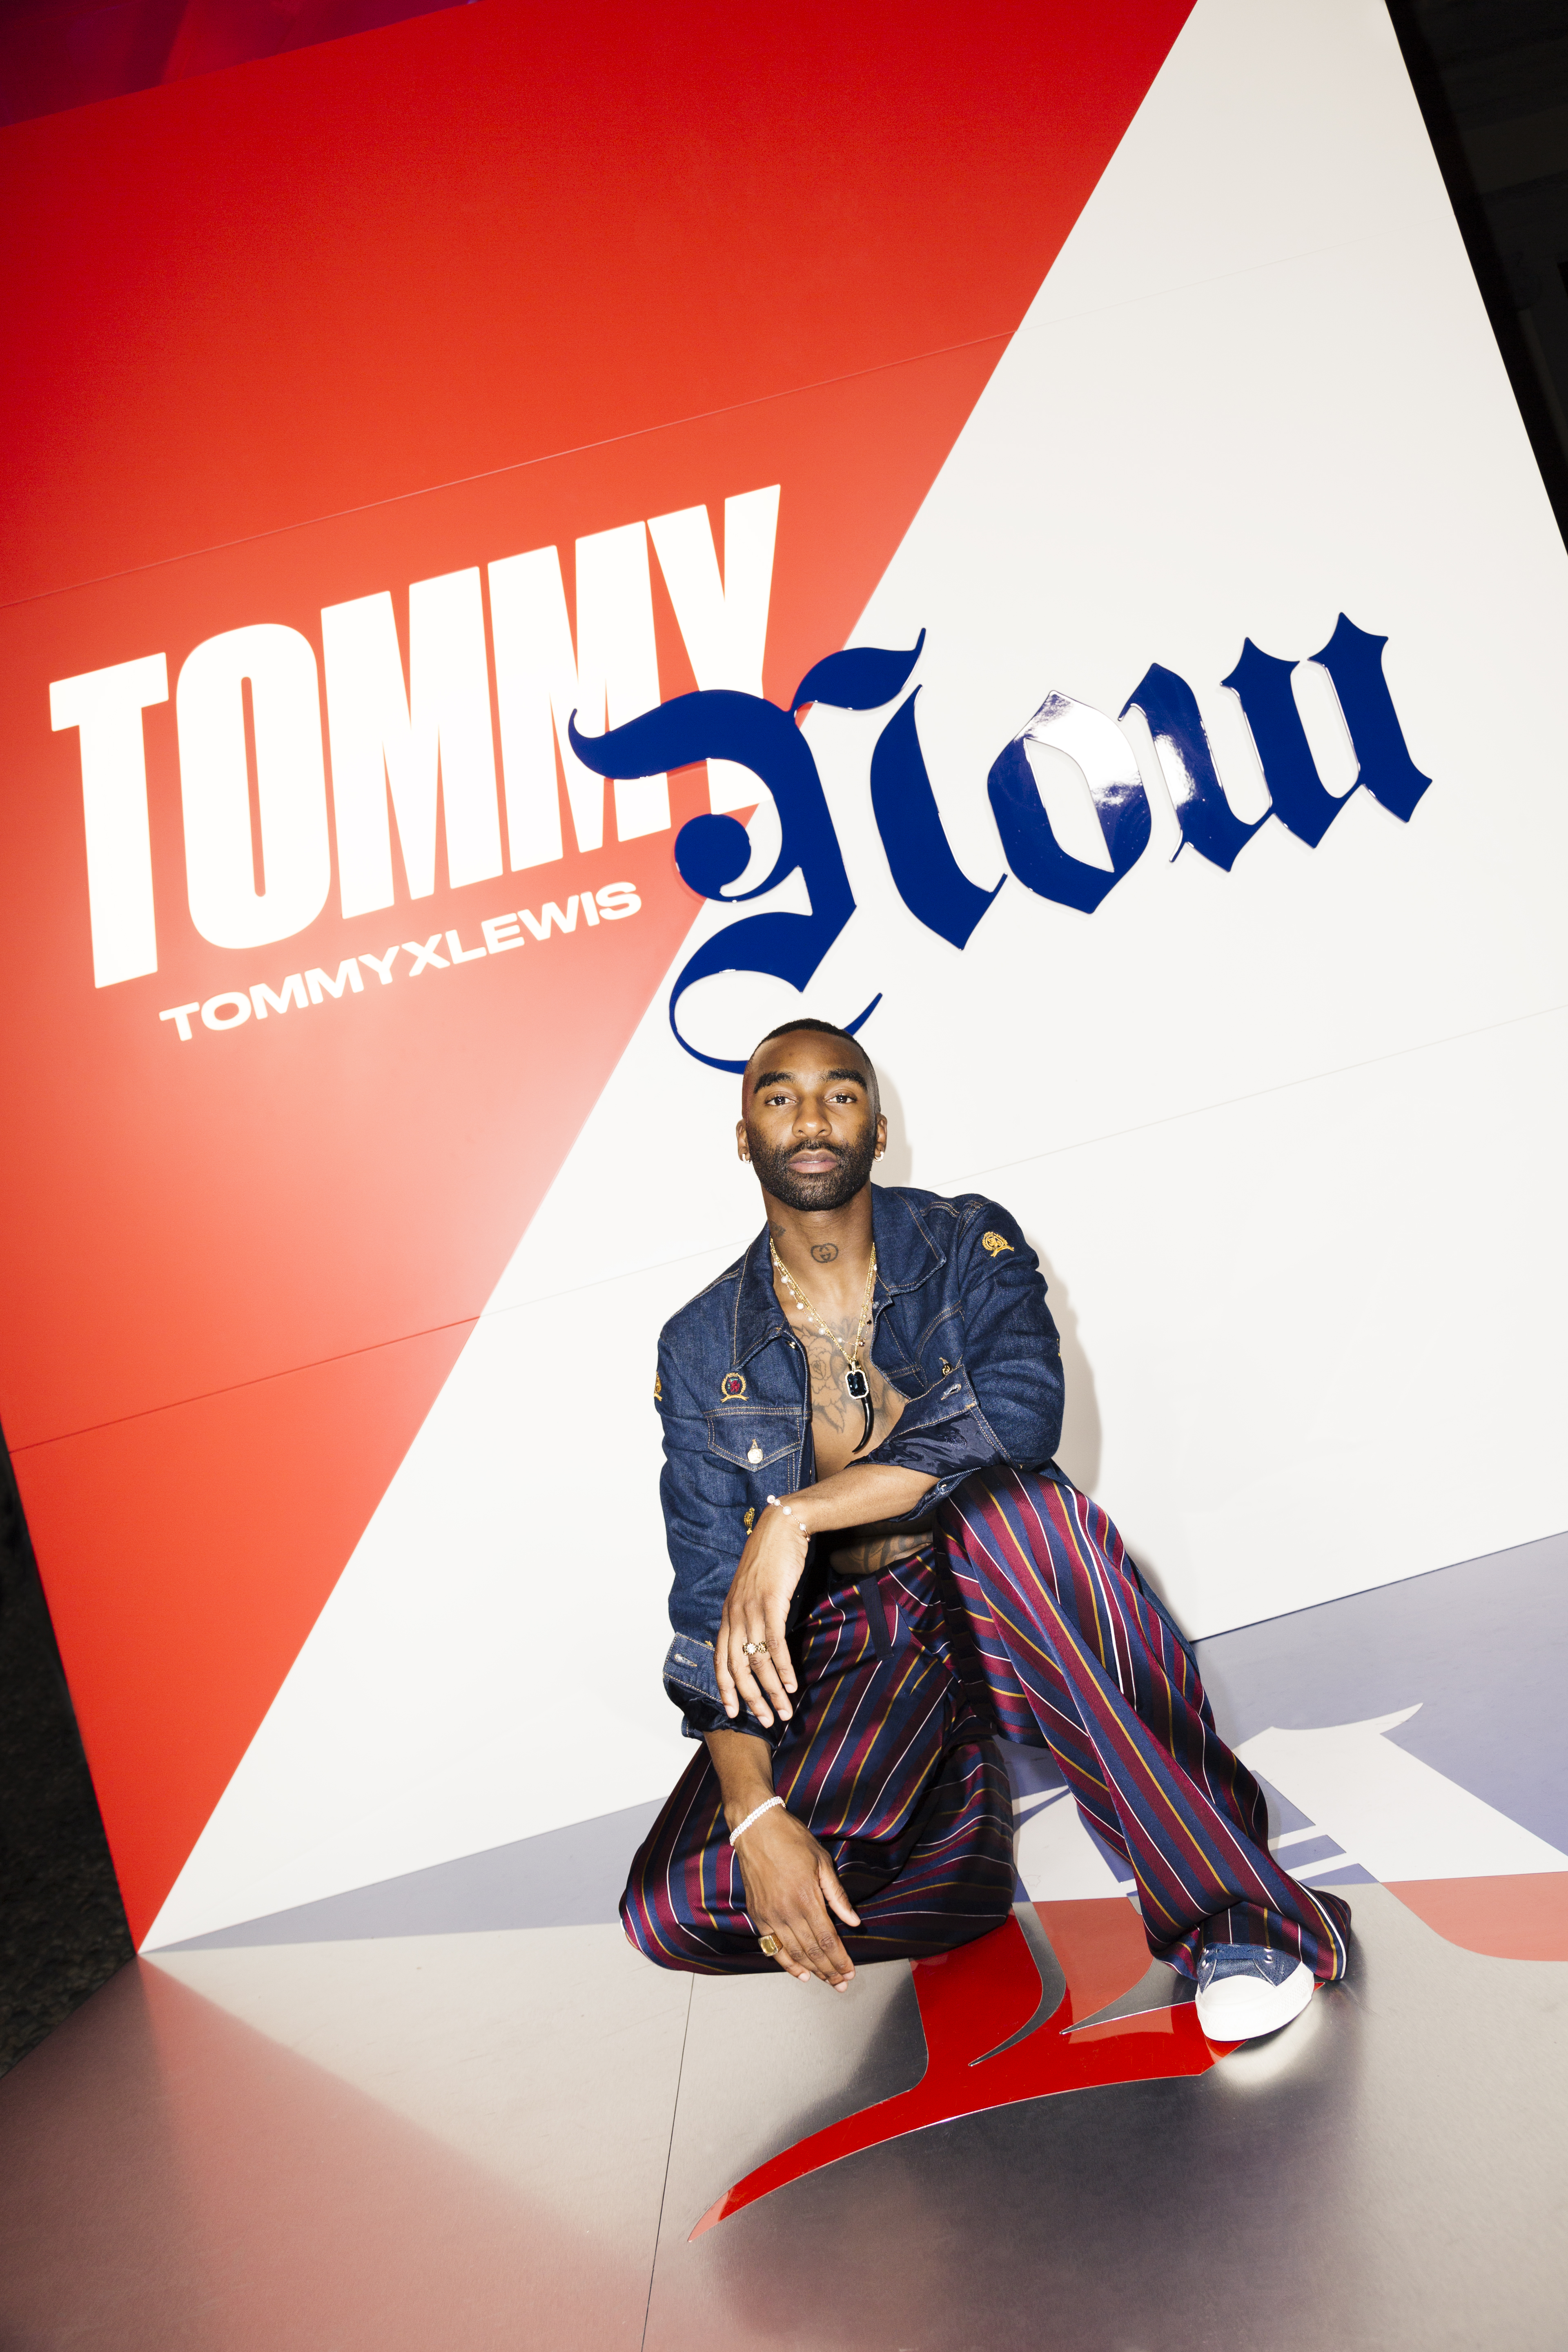 RIKY RICK WEARS TOMMY HILFIGER TO THE FALL 2019 TOMMYNOW TOMMYXLEWIS EXPERIENTIAL EVENT IN MILAN 6Y8A8781